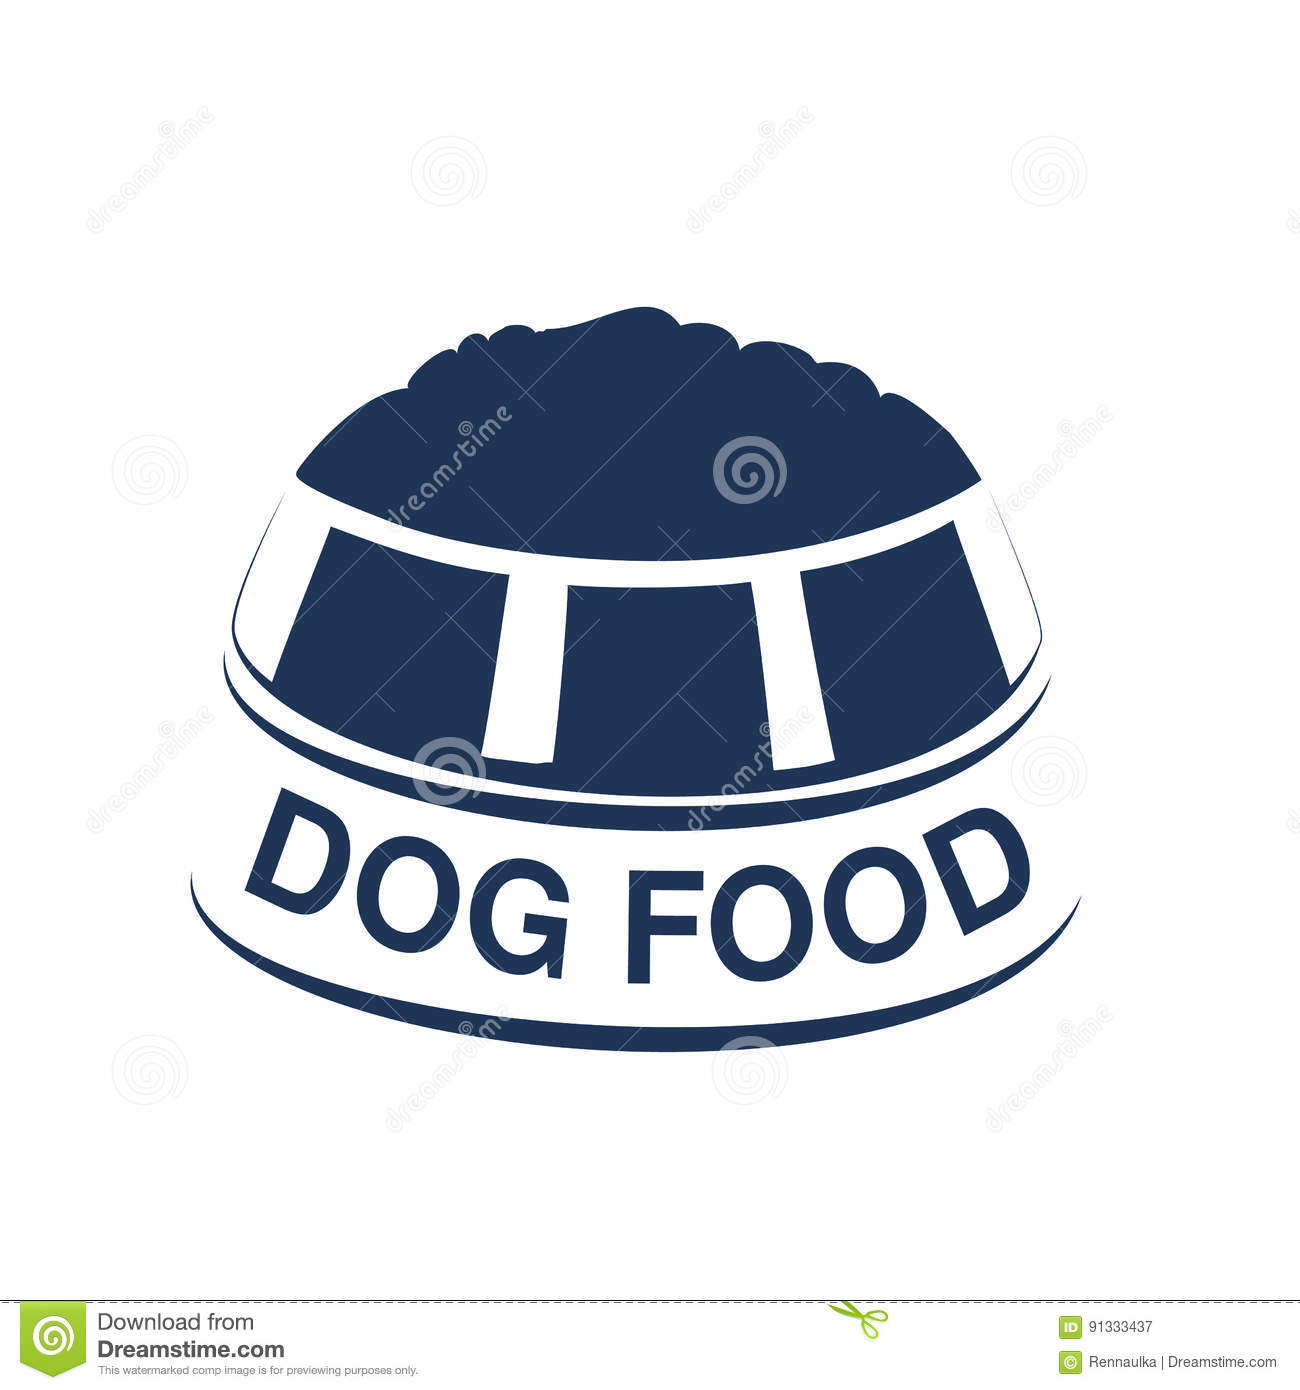 Dog Food Label With Silhouette Of A Bowl Of Feed Dog Food Symbols